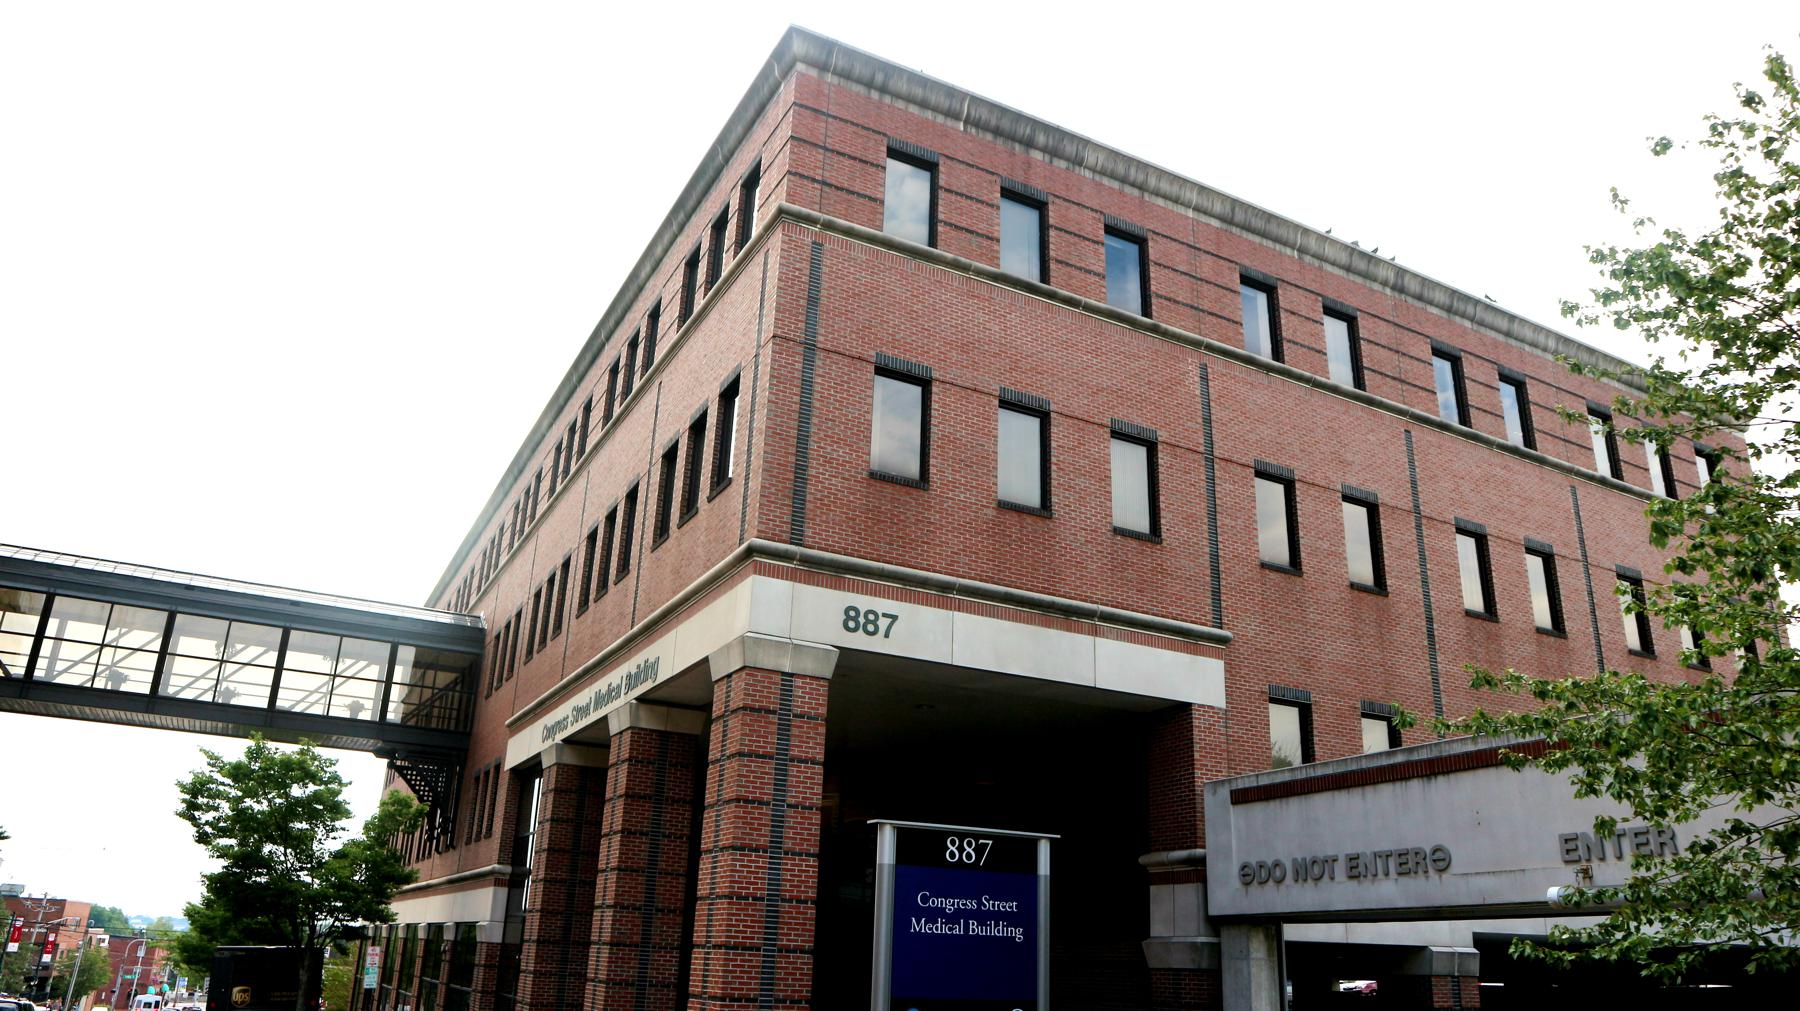 Maine Medical Partners Medical Building 887 Congress St., Portland, ME